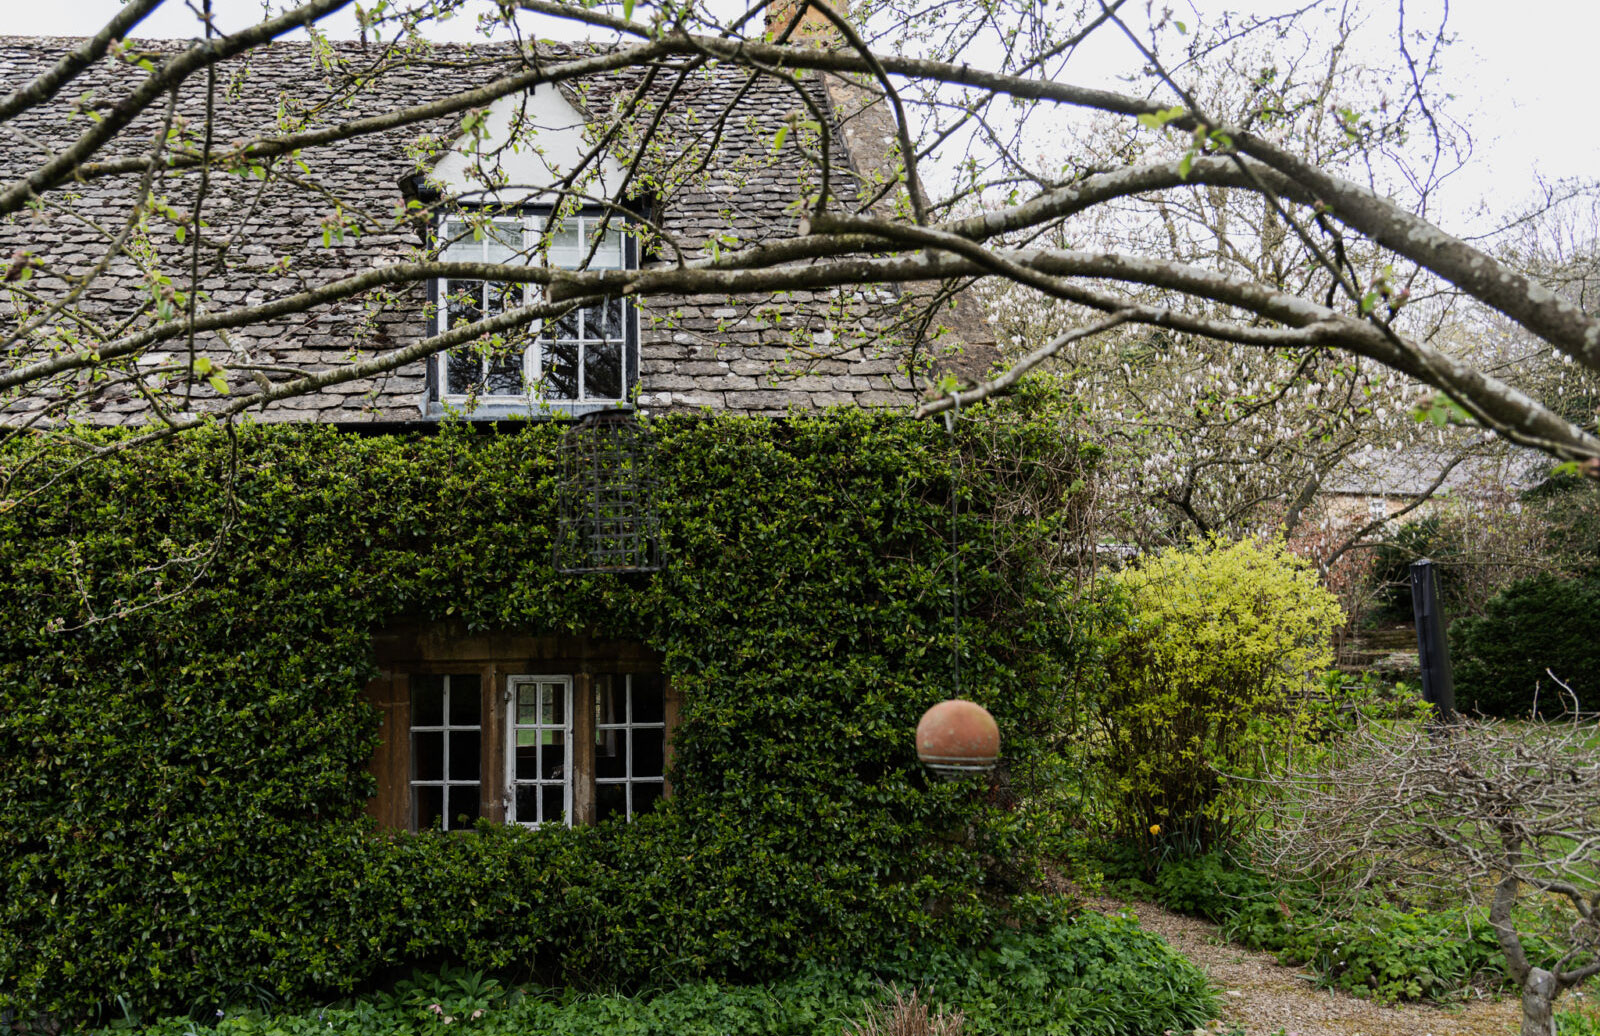 The pretty cottage is covered in ivy